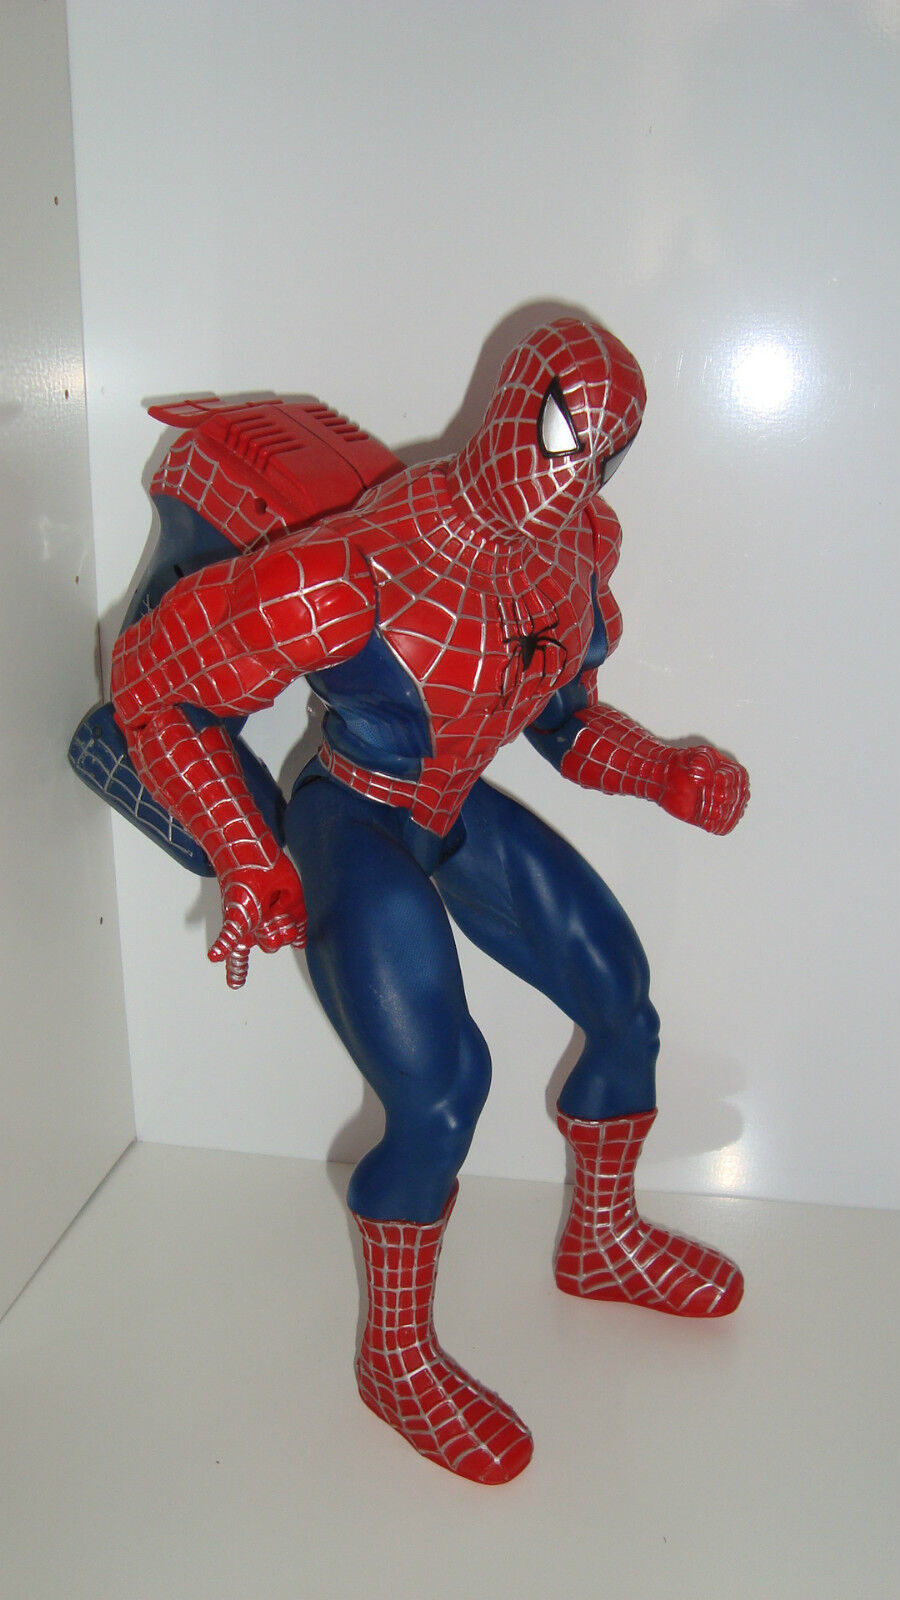 Figurine Giant Marvel of Spiderman with Its Handle (34x17cm)